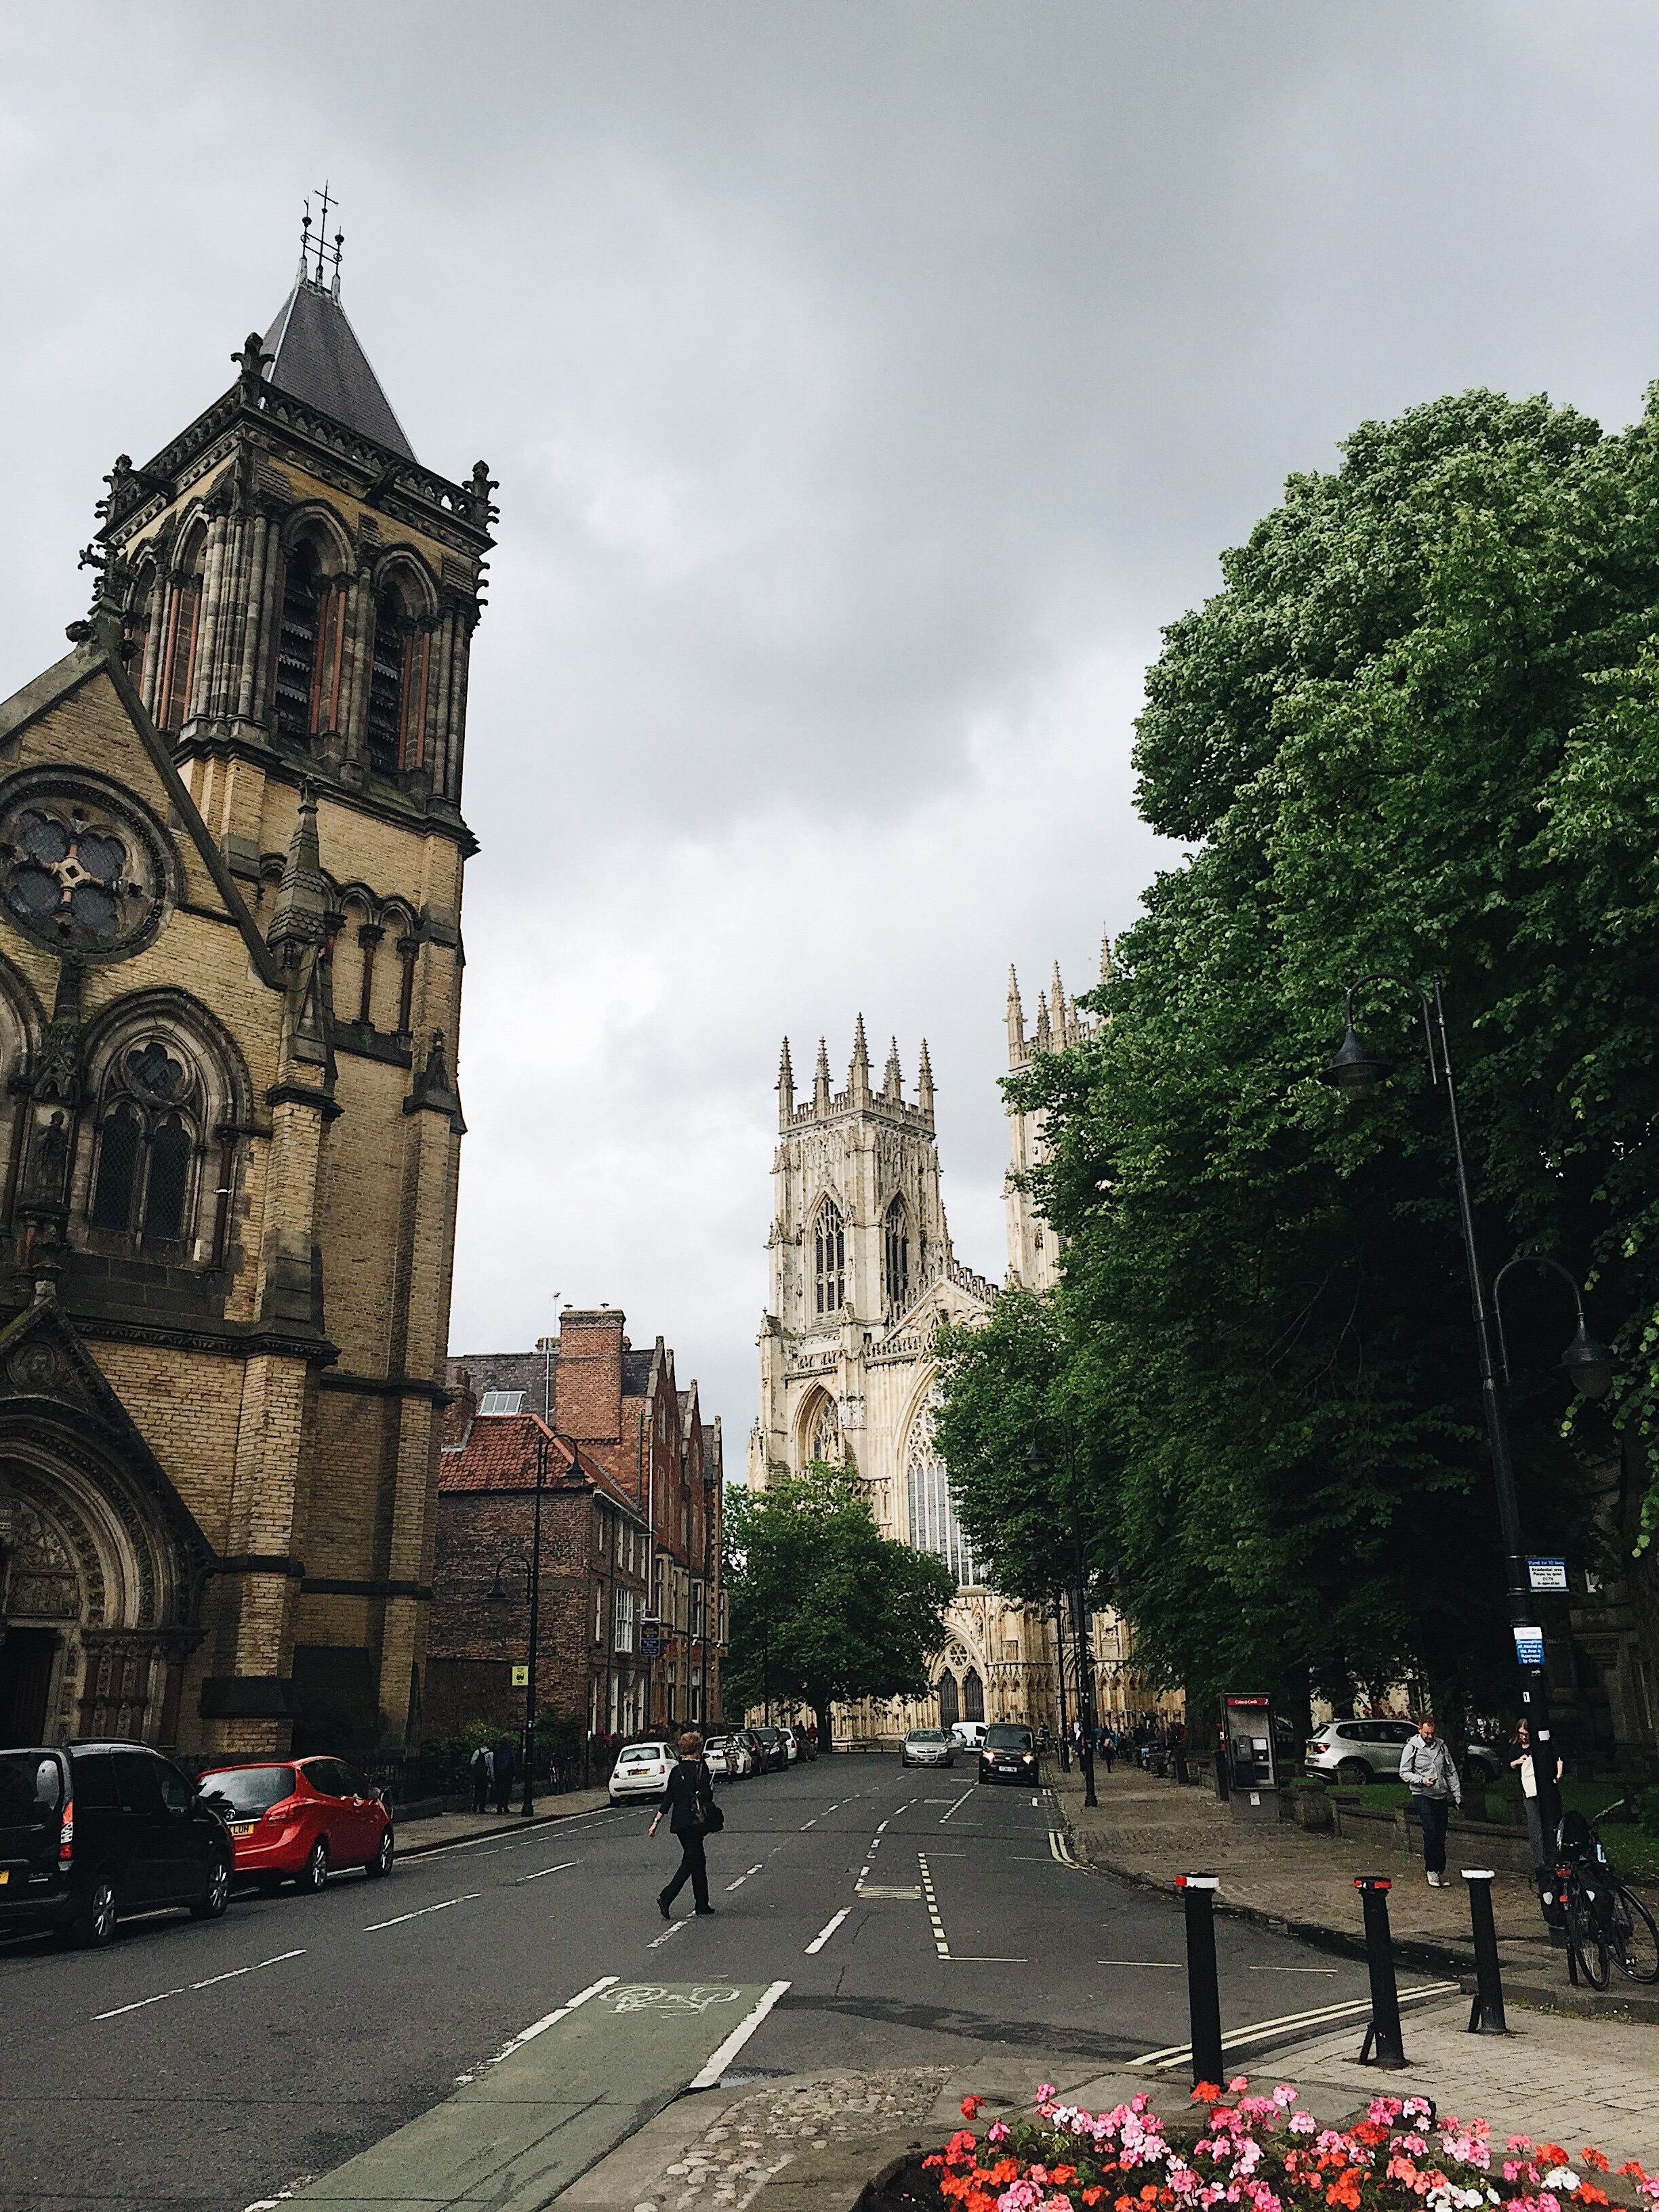 Seemingly, all roads lead to York Minster